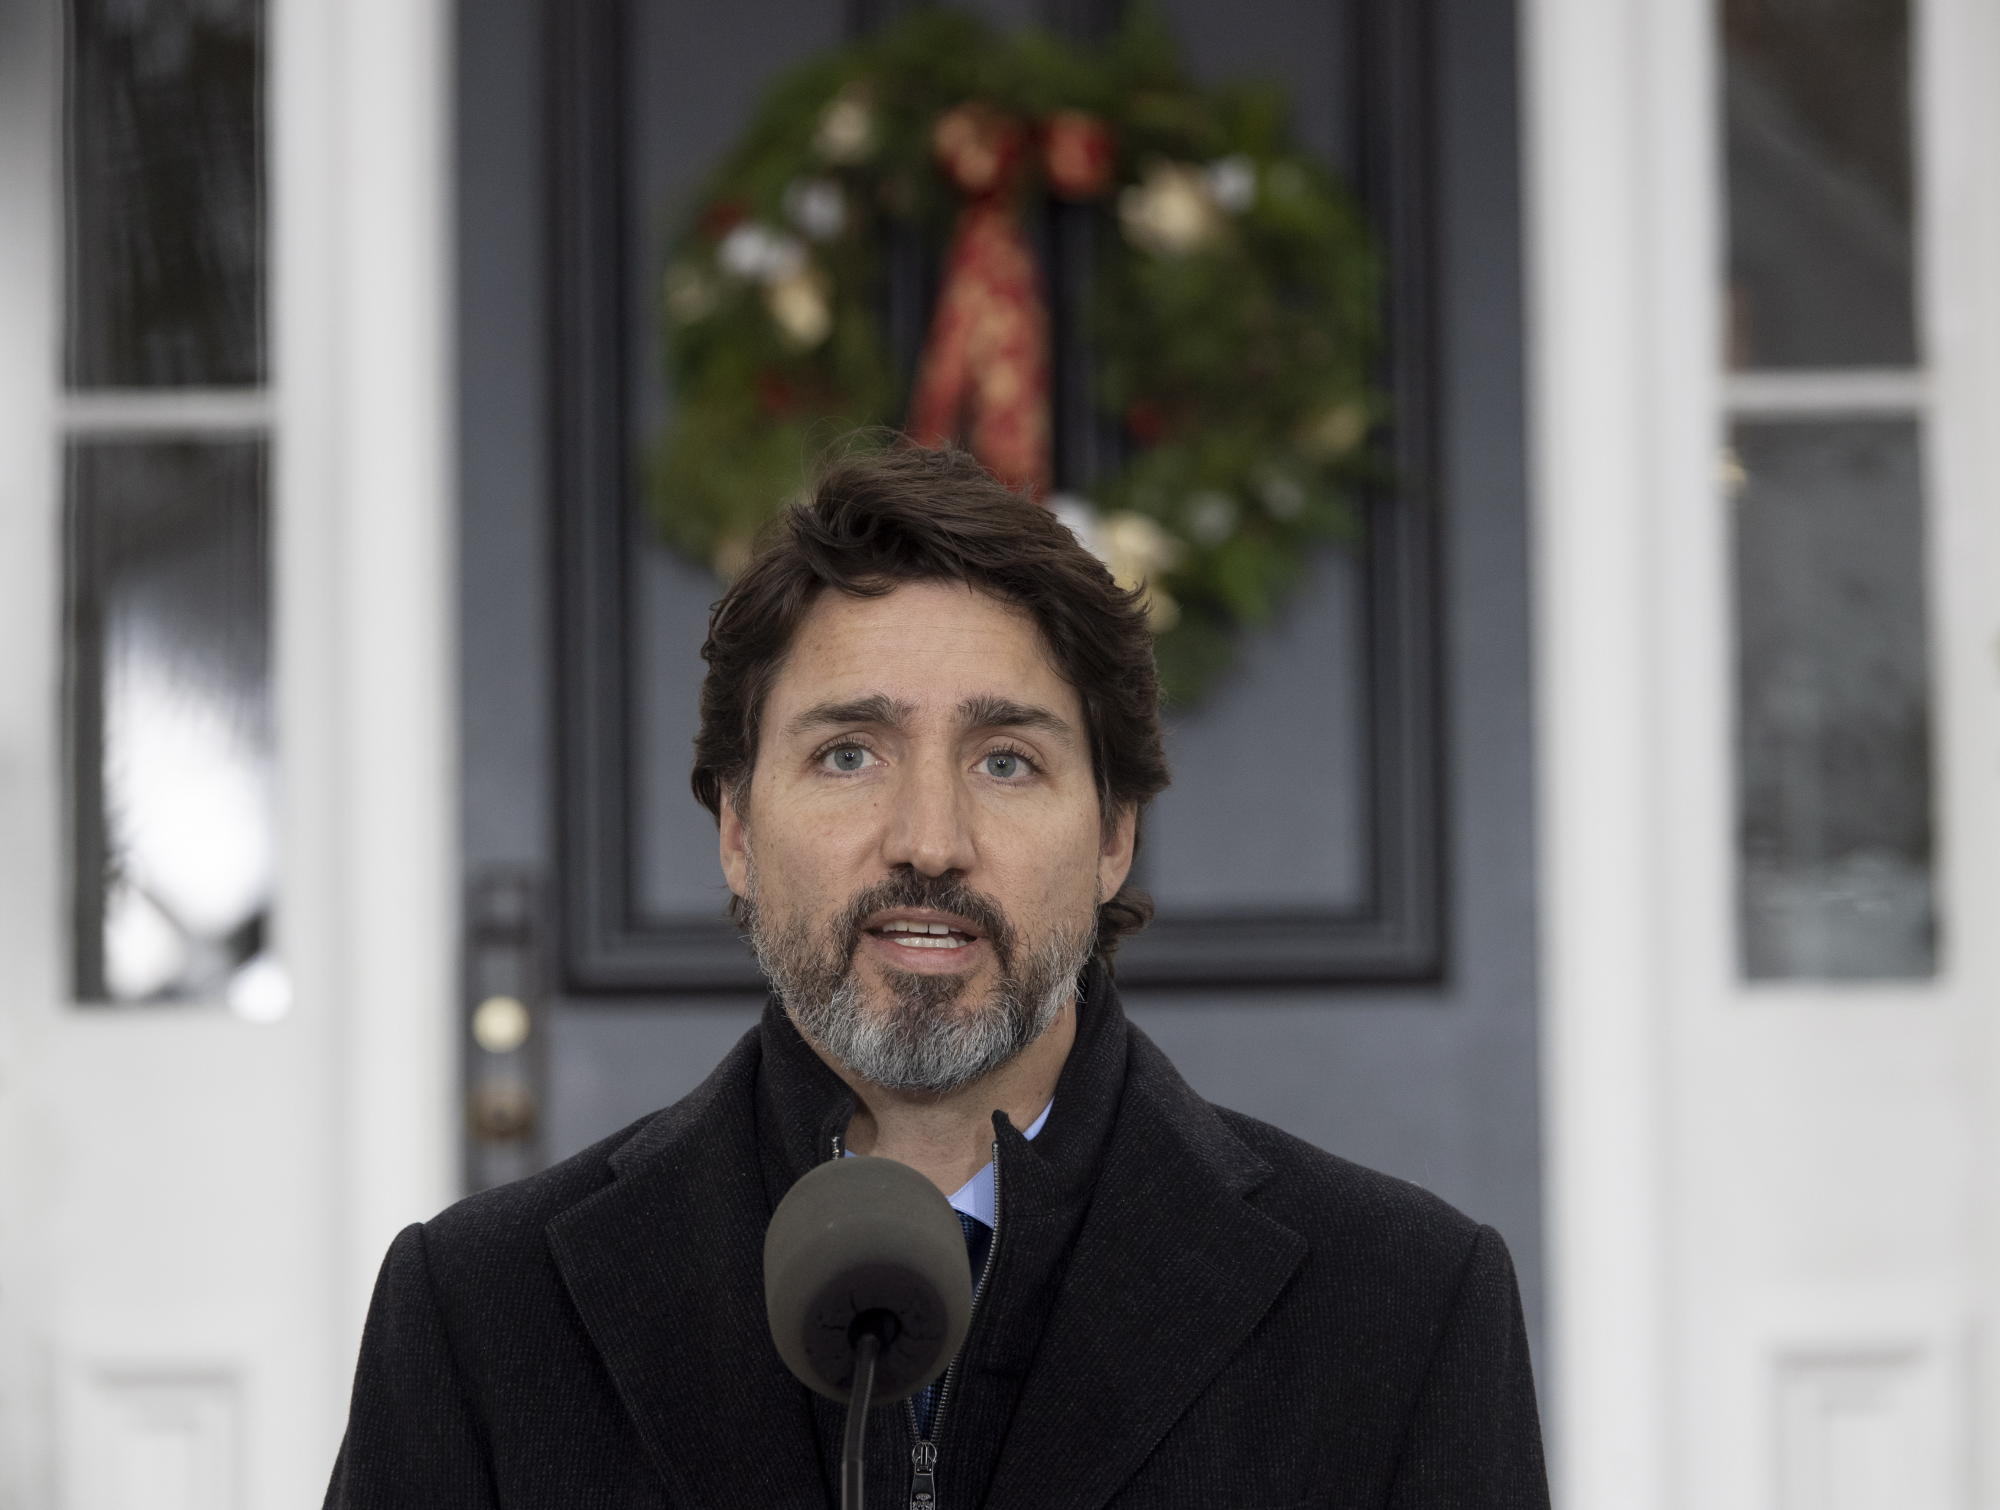 COVID-19 in Canada - 'I don't want to be here': PM Trudeau tells 'sick and tired' Canadians to 'immediately' cut contacts, as the country teeters on edge of crisis